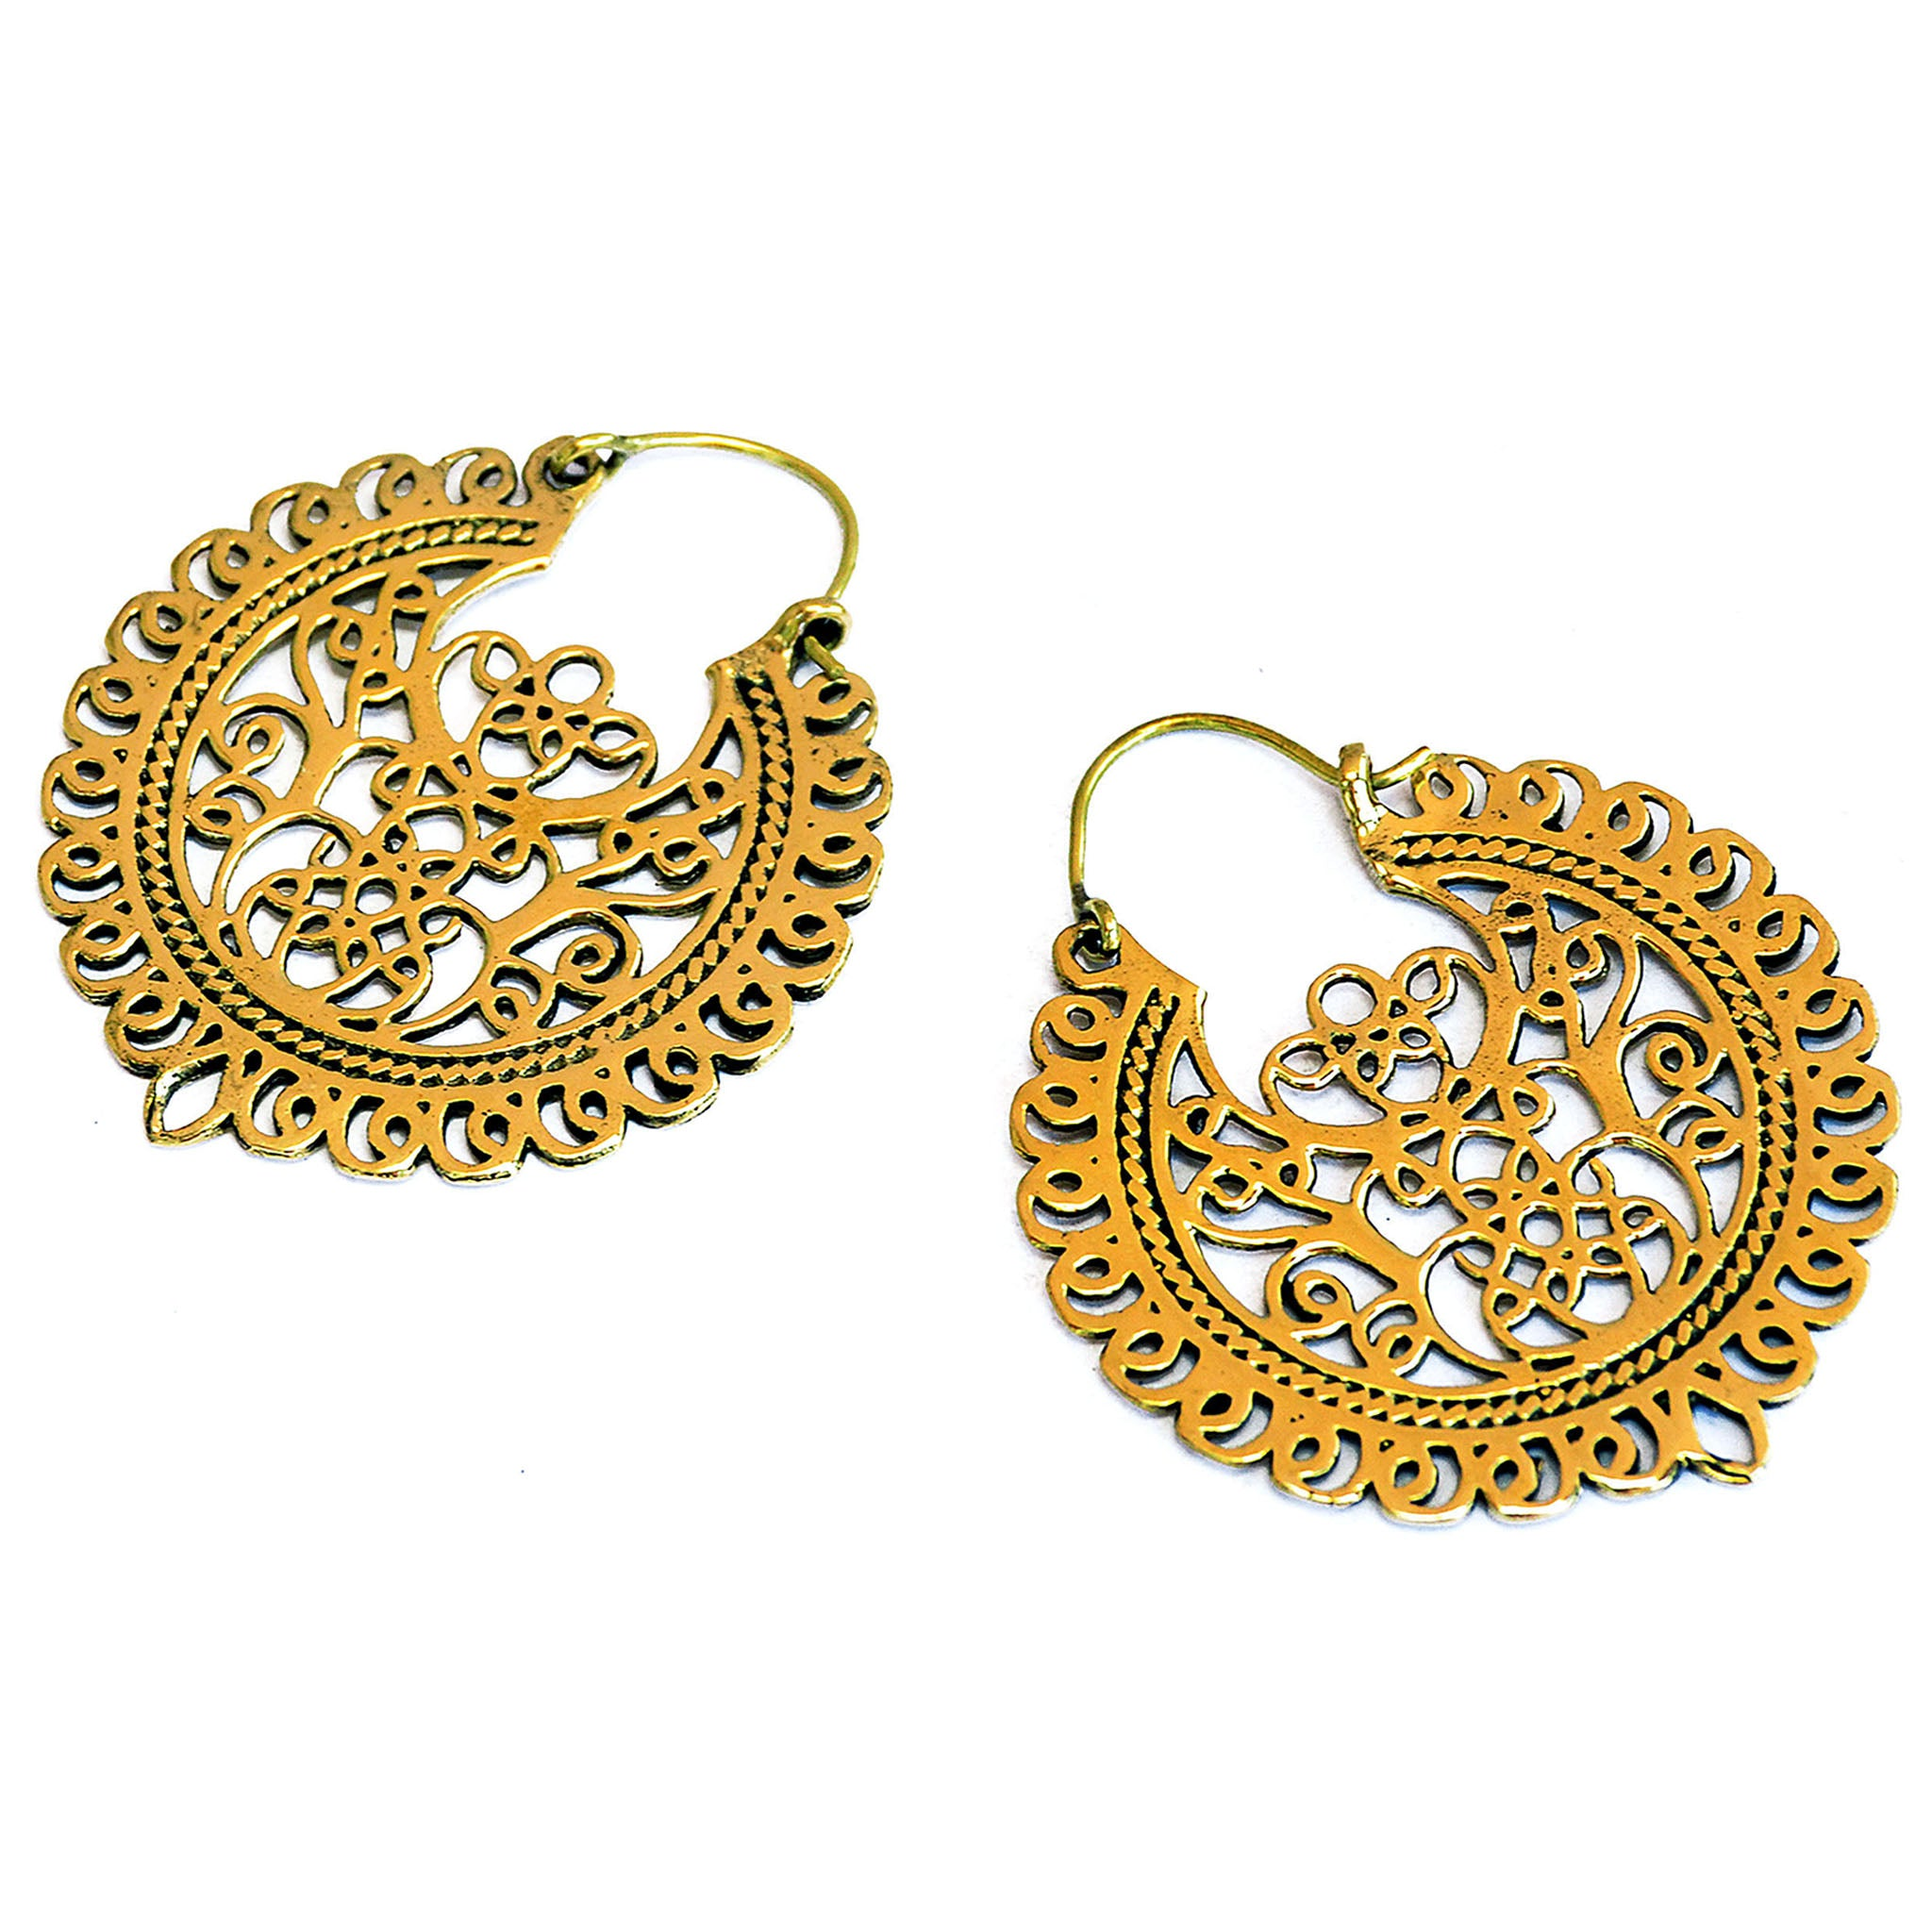 Ornate brass hoop filigree earrings